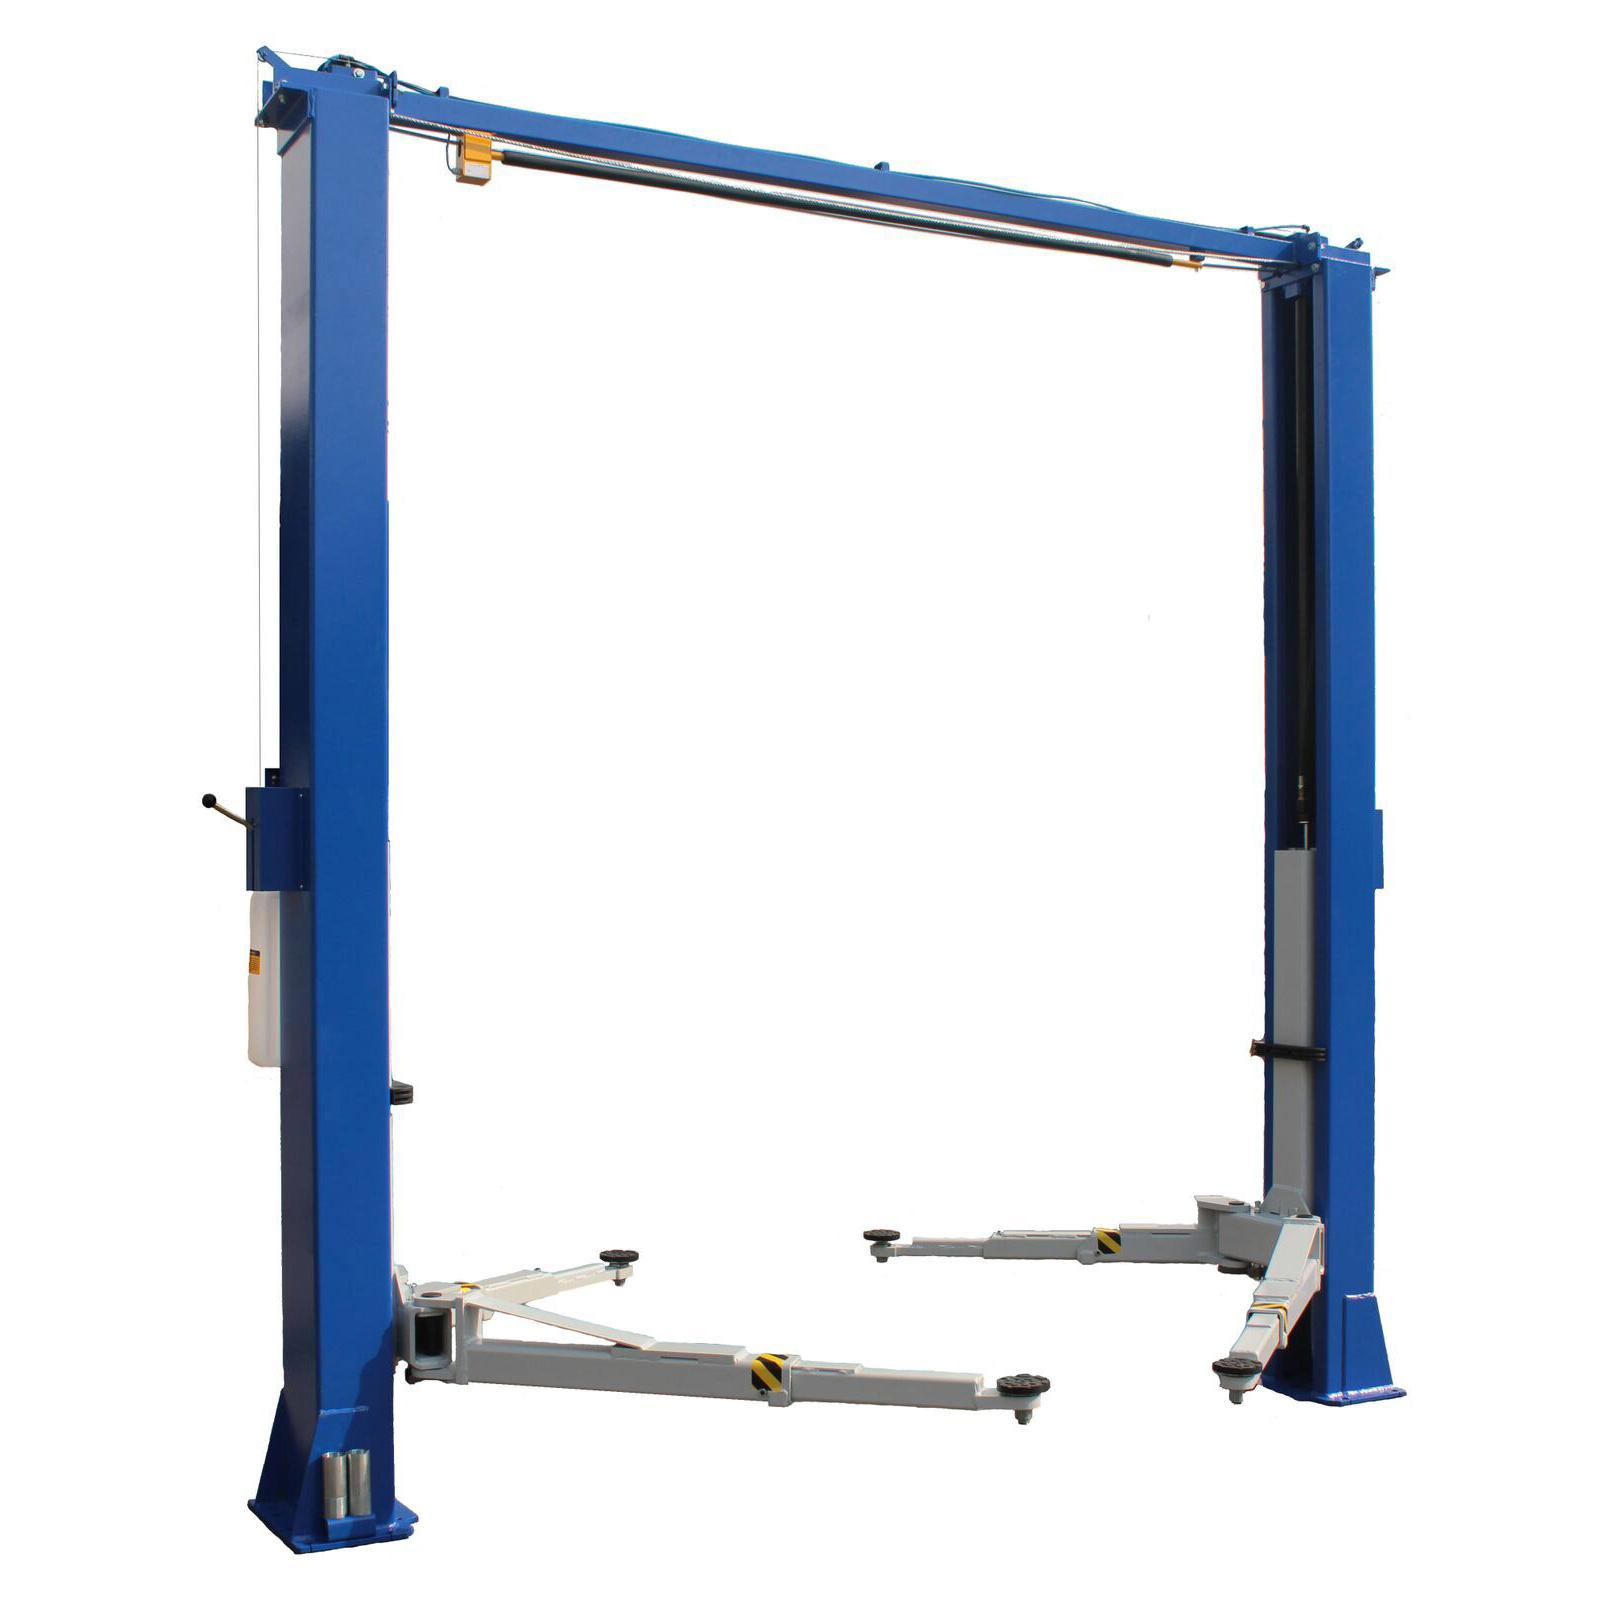 Ali Certified 2 Post Lifts Ideal 10k Auto Lift Redline Stands